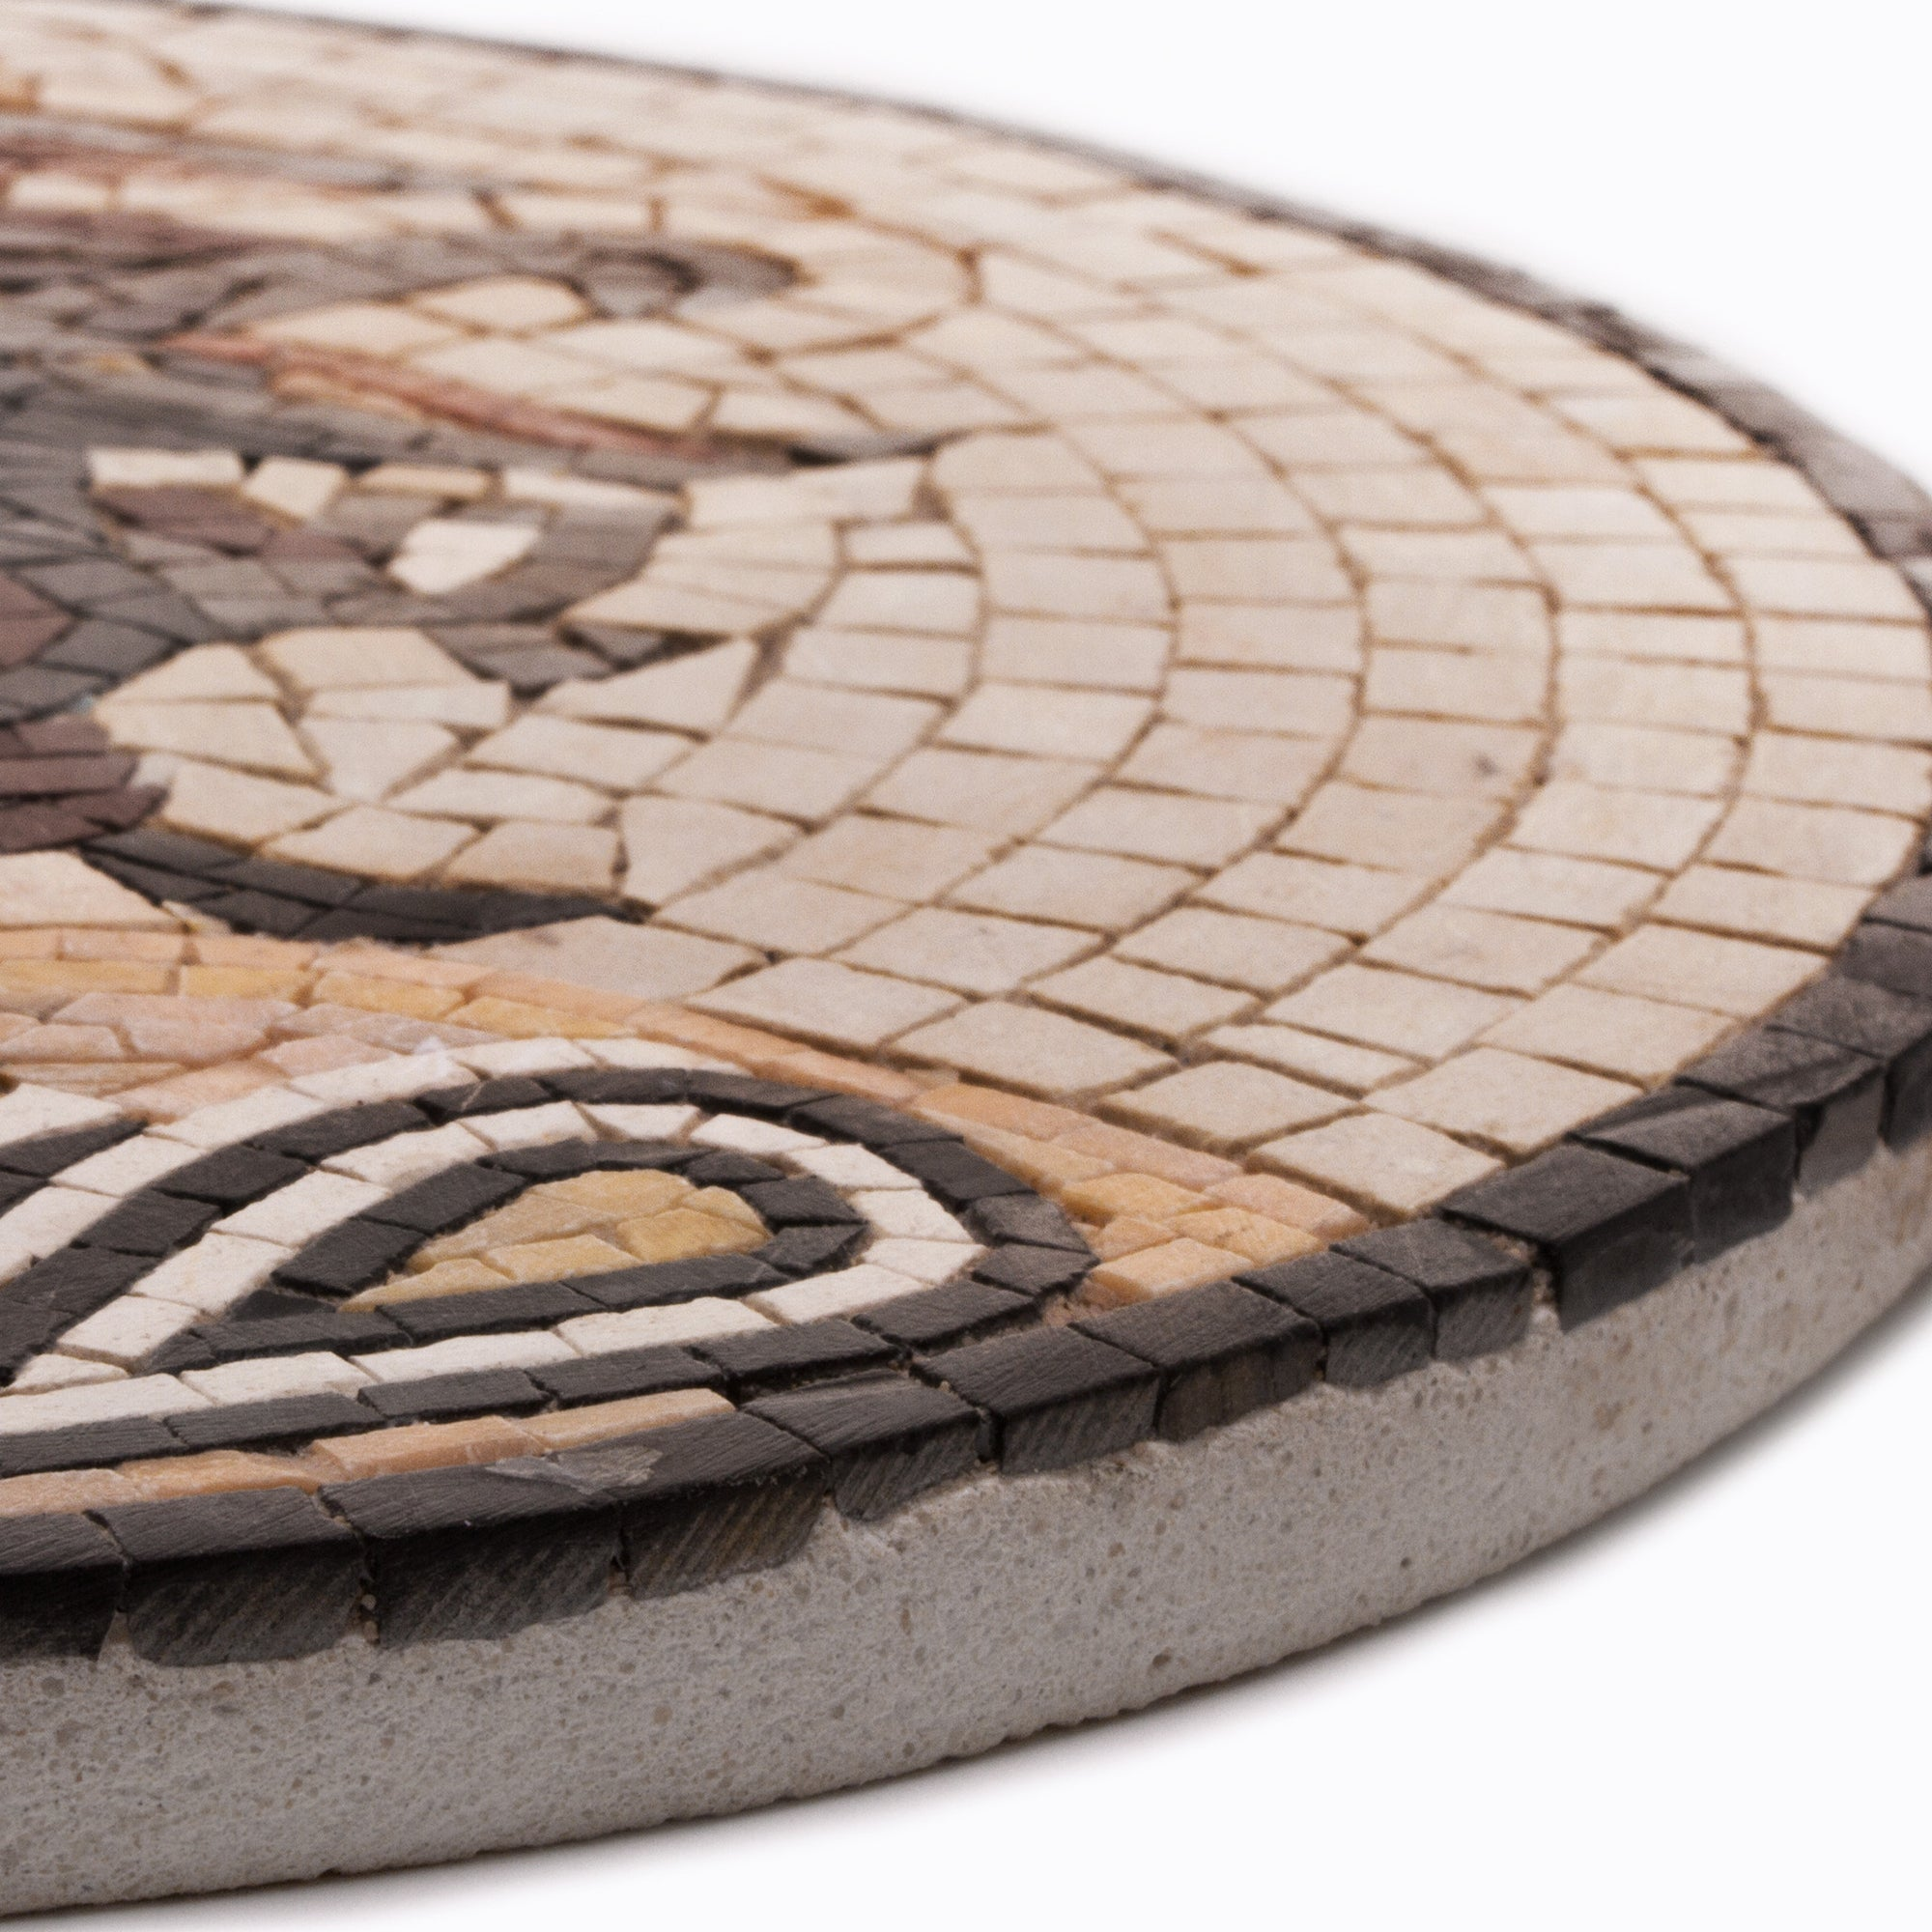 Medusa Mosaic Floor Reproduction | Getty Store